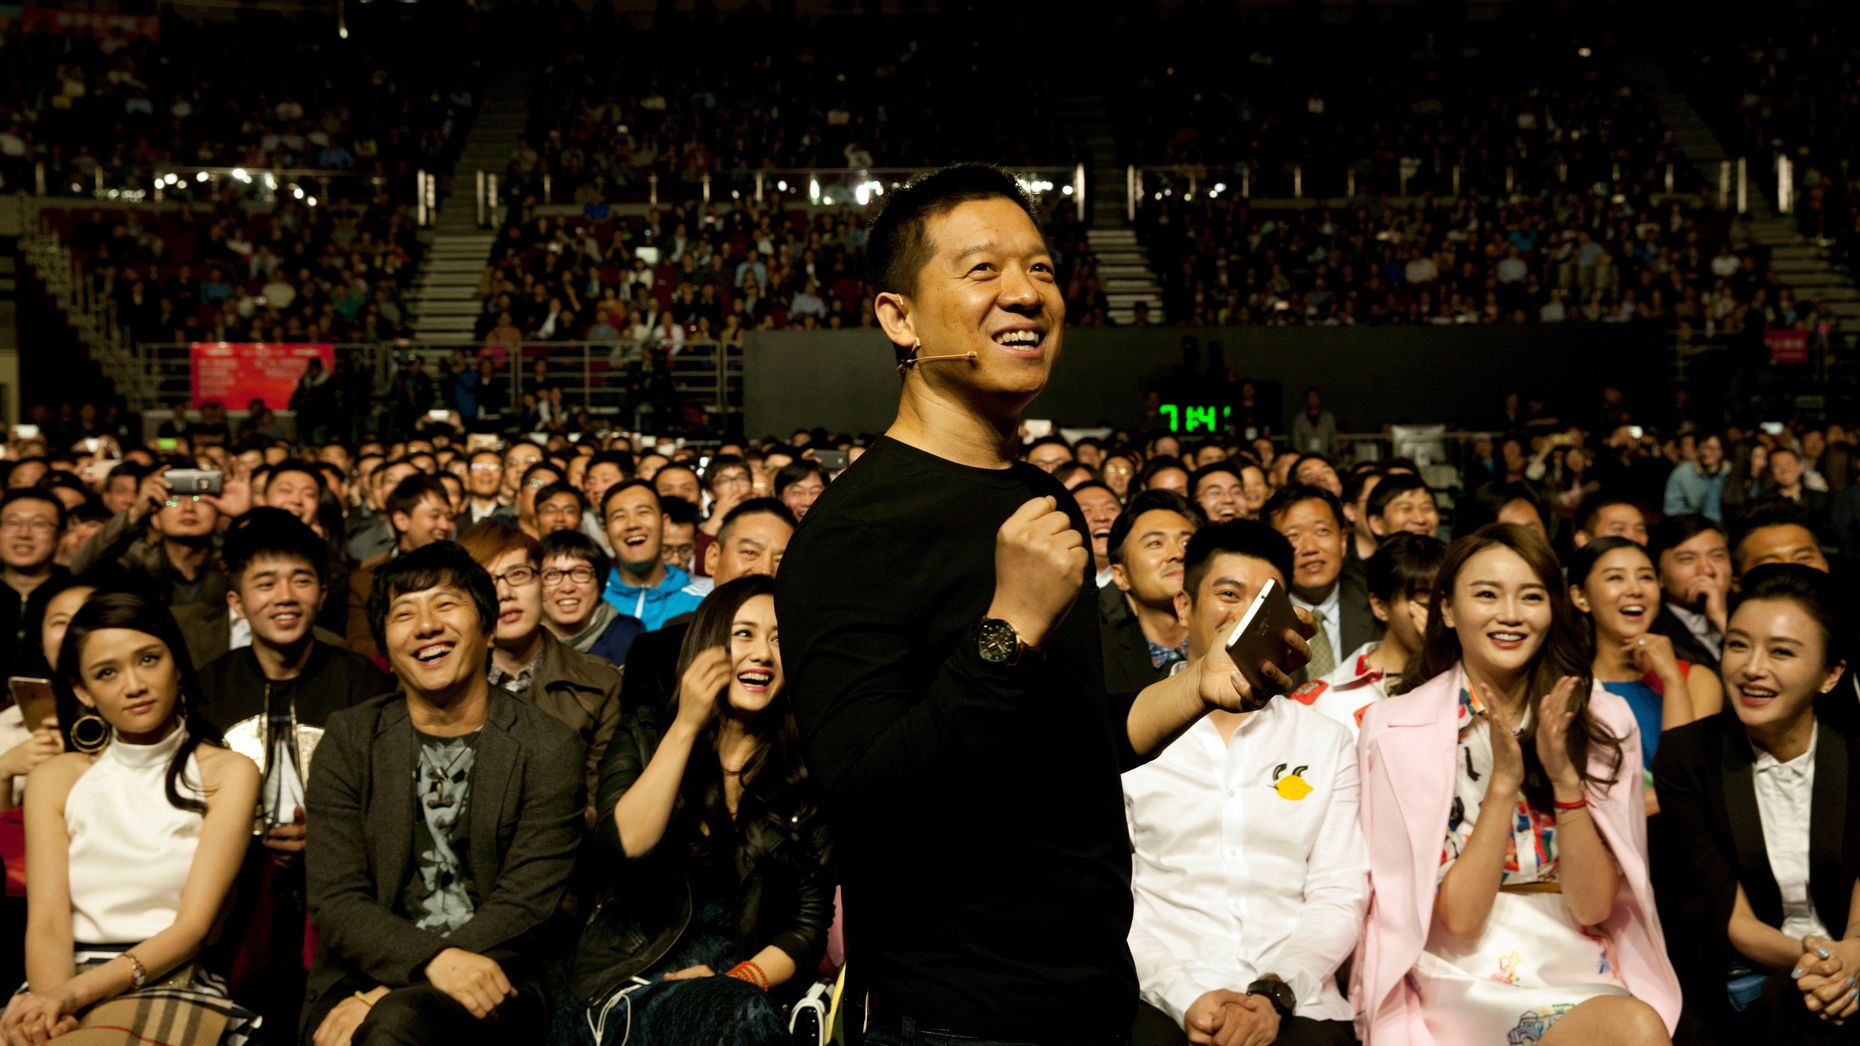 LeEco founder Jia Yueting at an event in Beijing in April, 2015. Photo by AP.